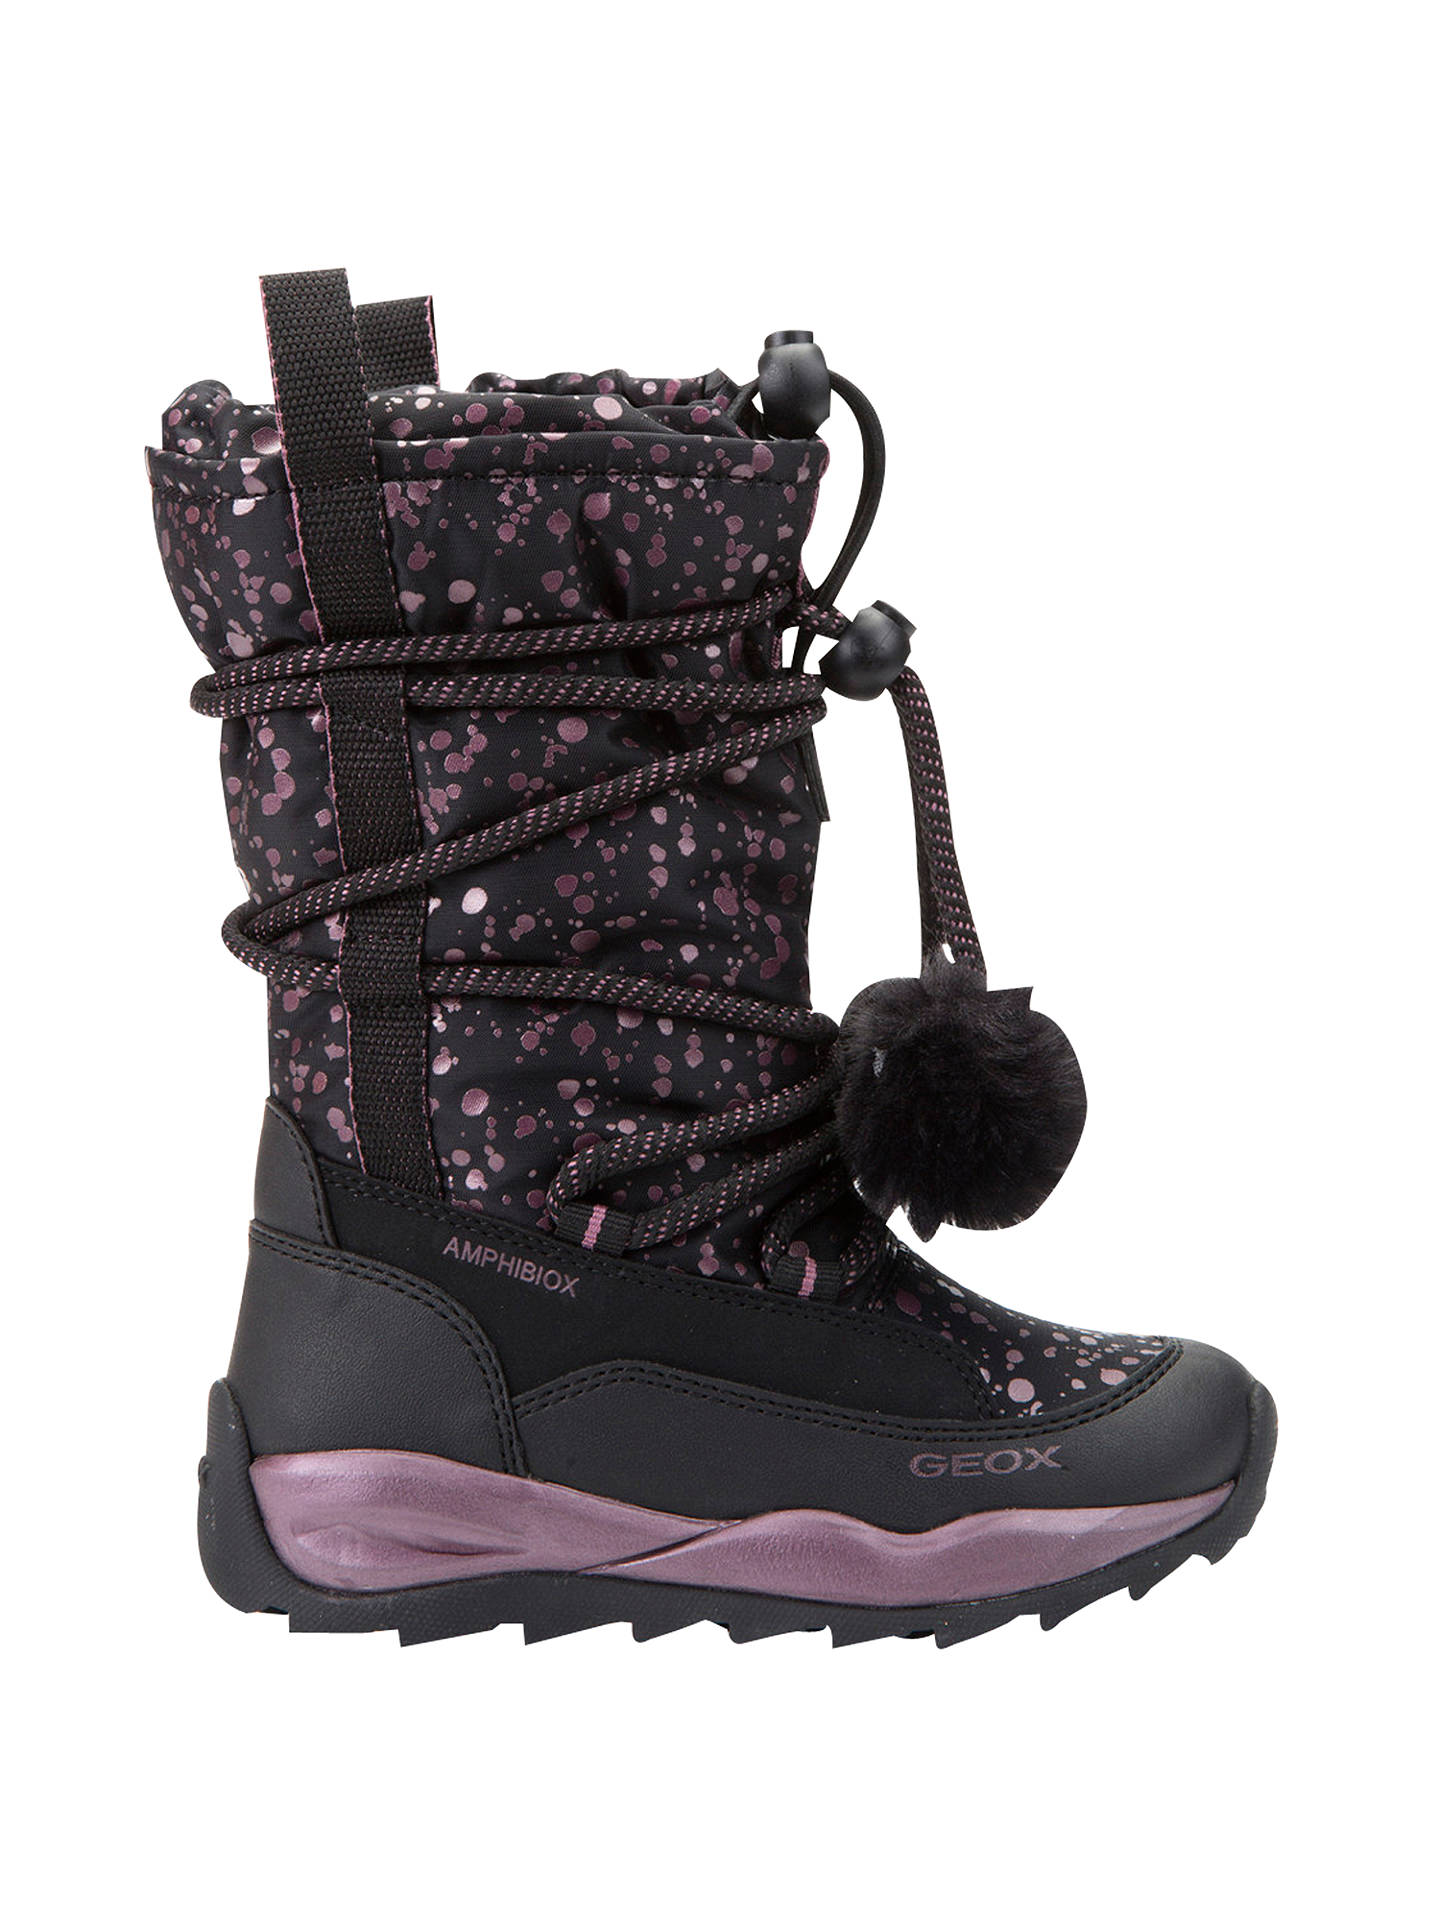 BuyGeox Children's Orizont ABX Pom Pom Lace Boots, Black/Pink, 32 Online at johnlewis.com